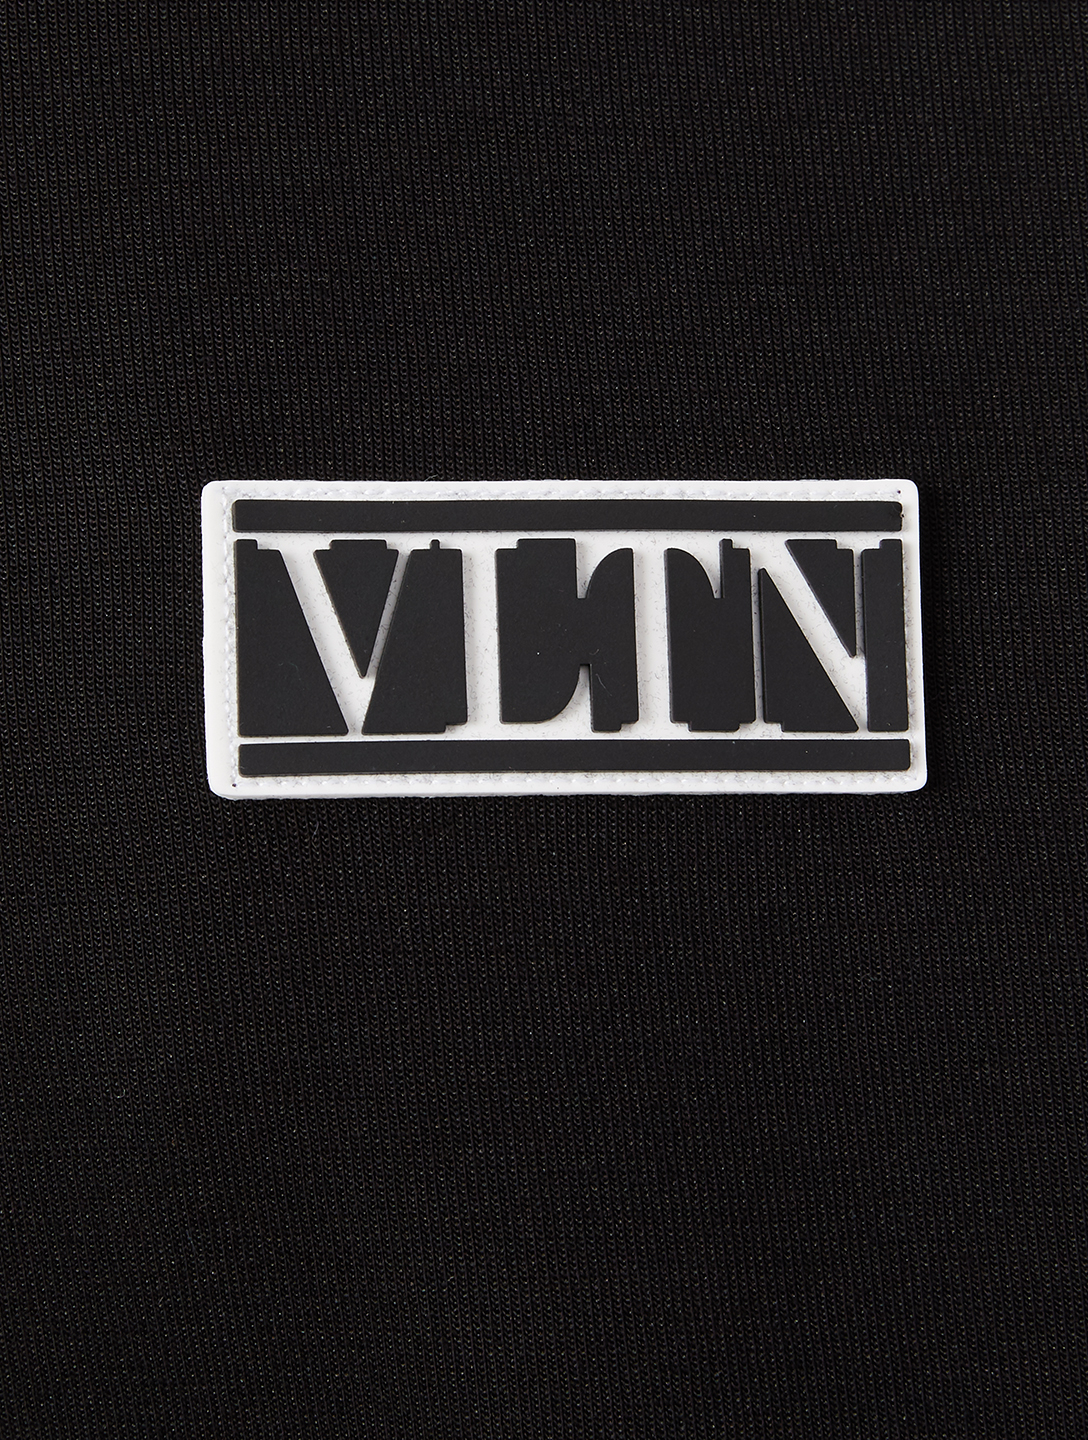 VALENTINO Cotton-Blend Sweatshirt With VLTN Tag Men's Black